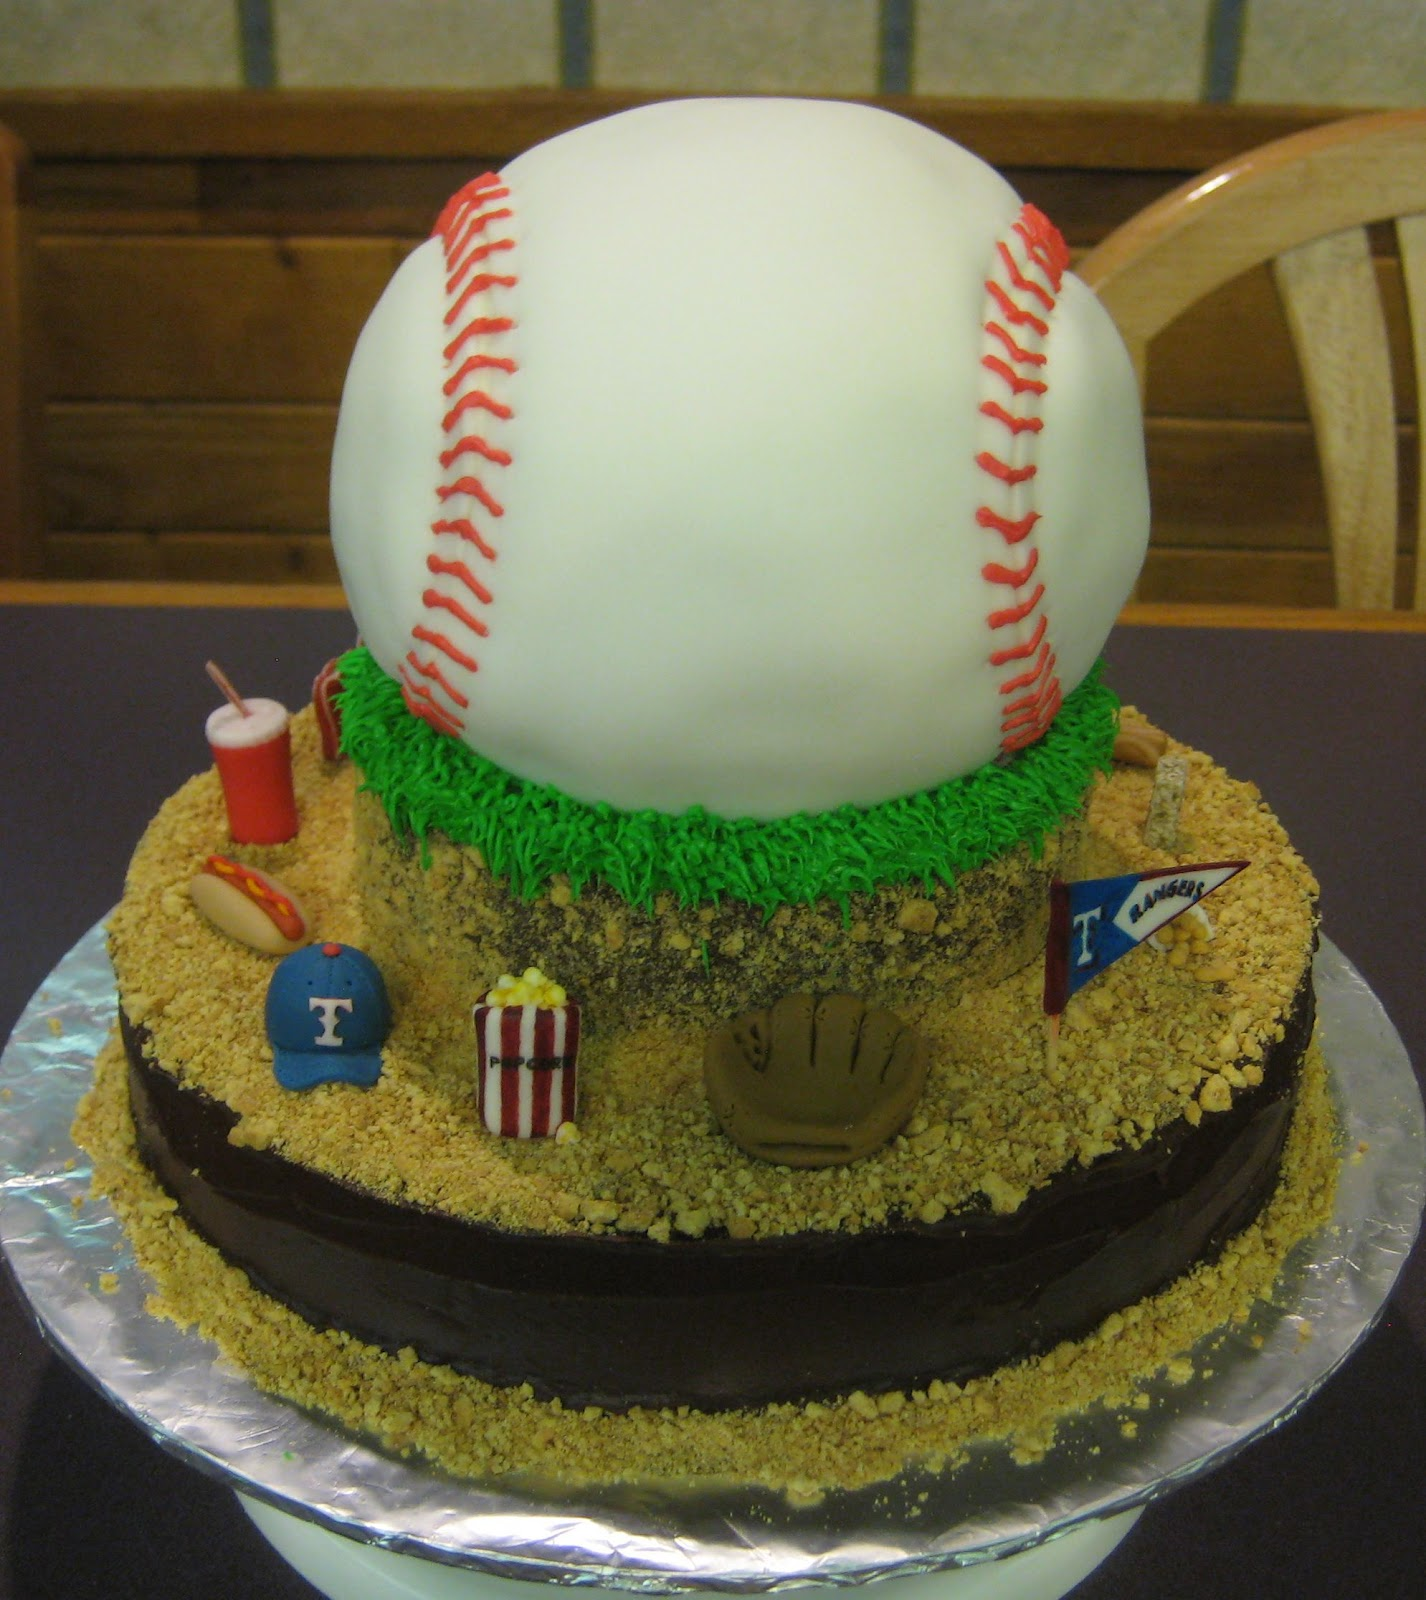 Top Baseball Cakes: My Cake Corner: Take Me Out To The Ball Game